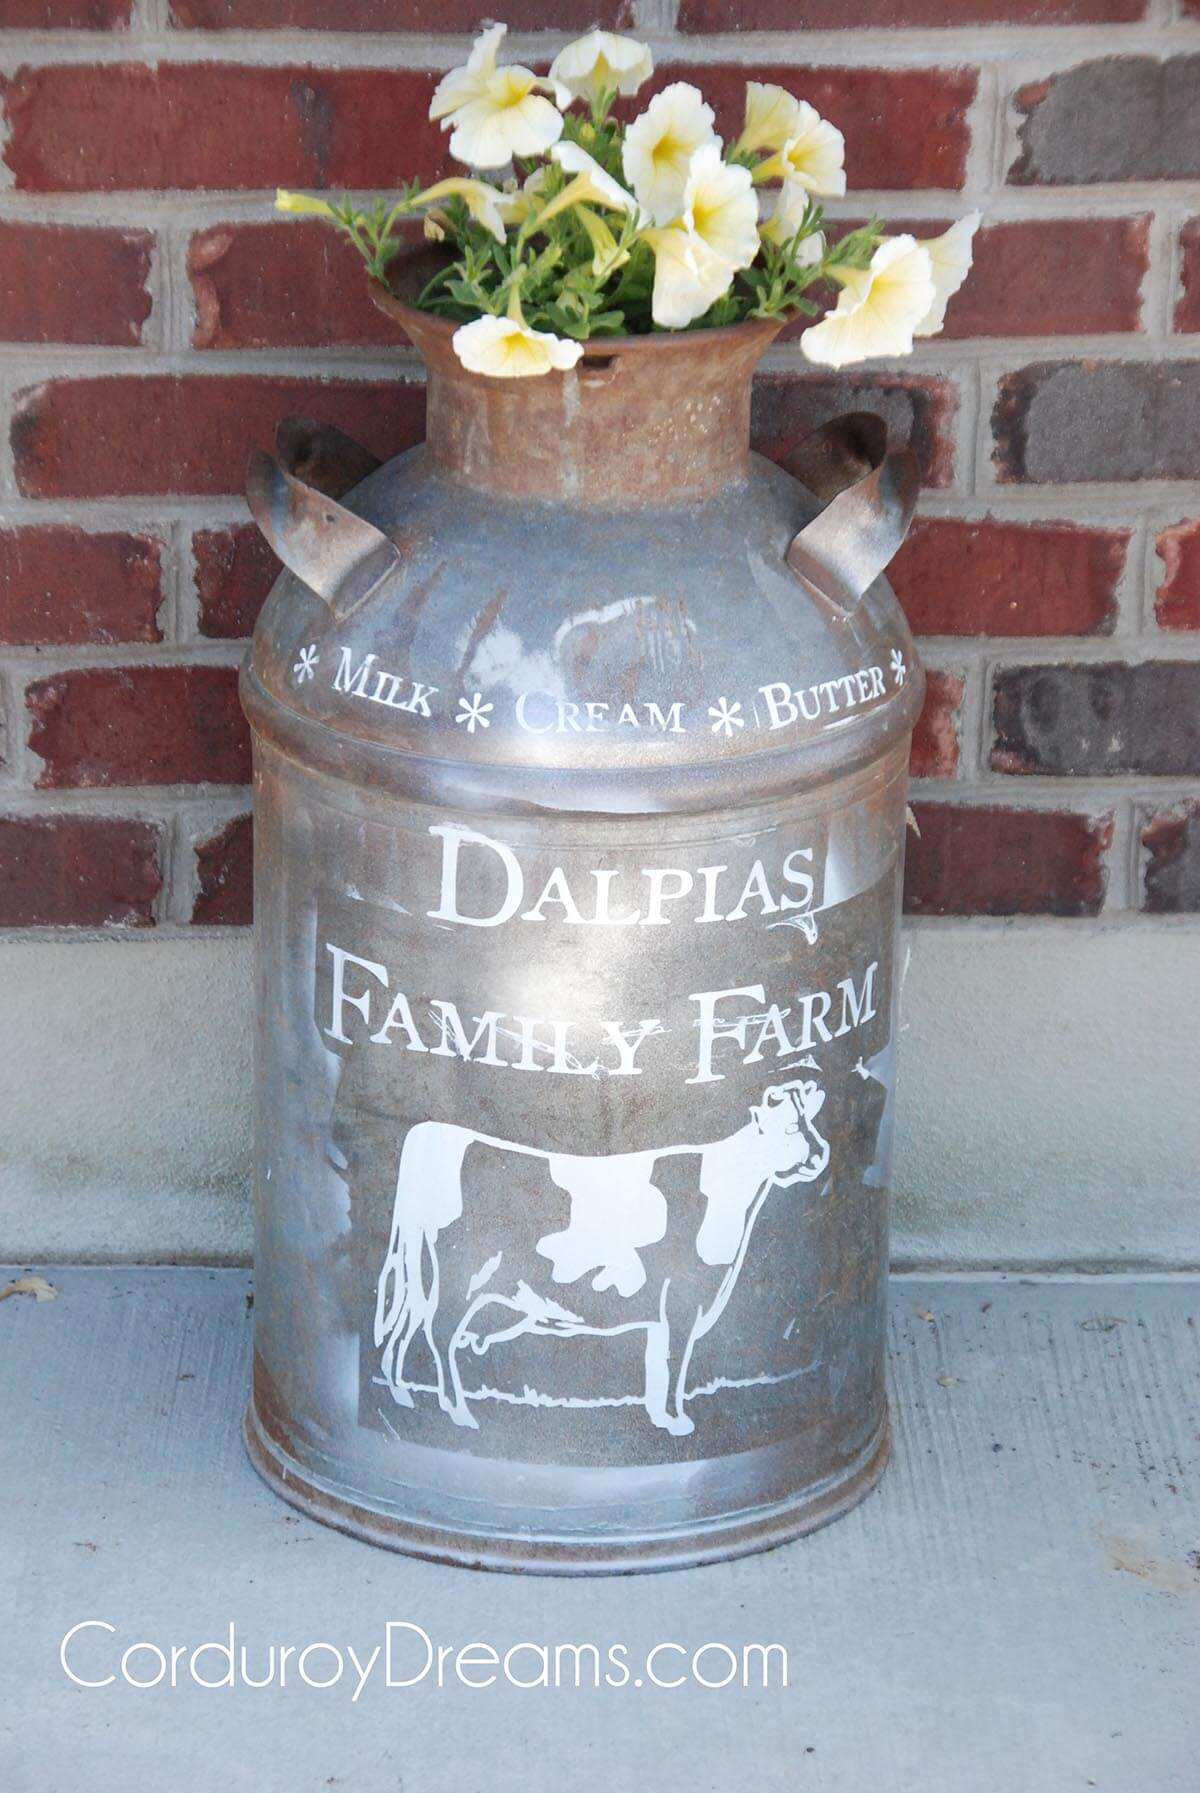 Personalized Adorable Milk Can Flower Planter